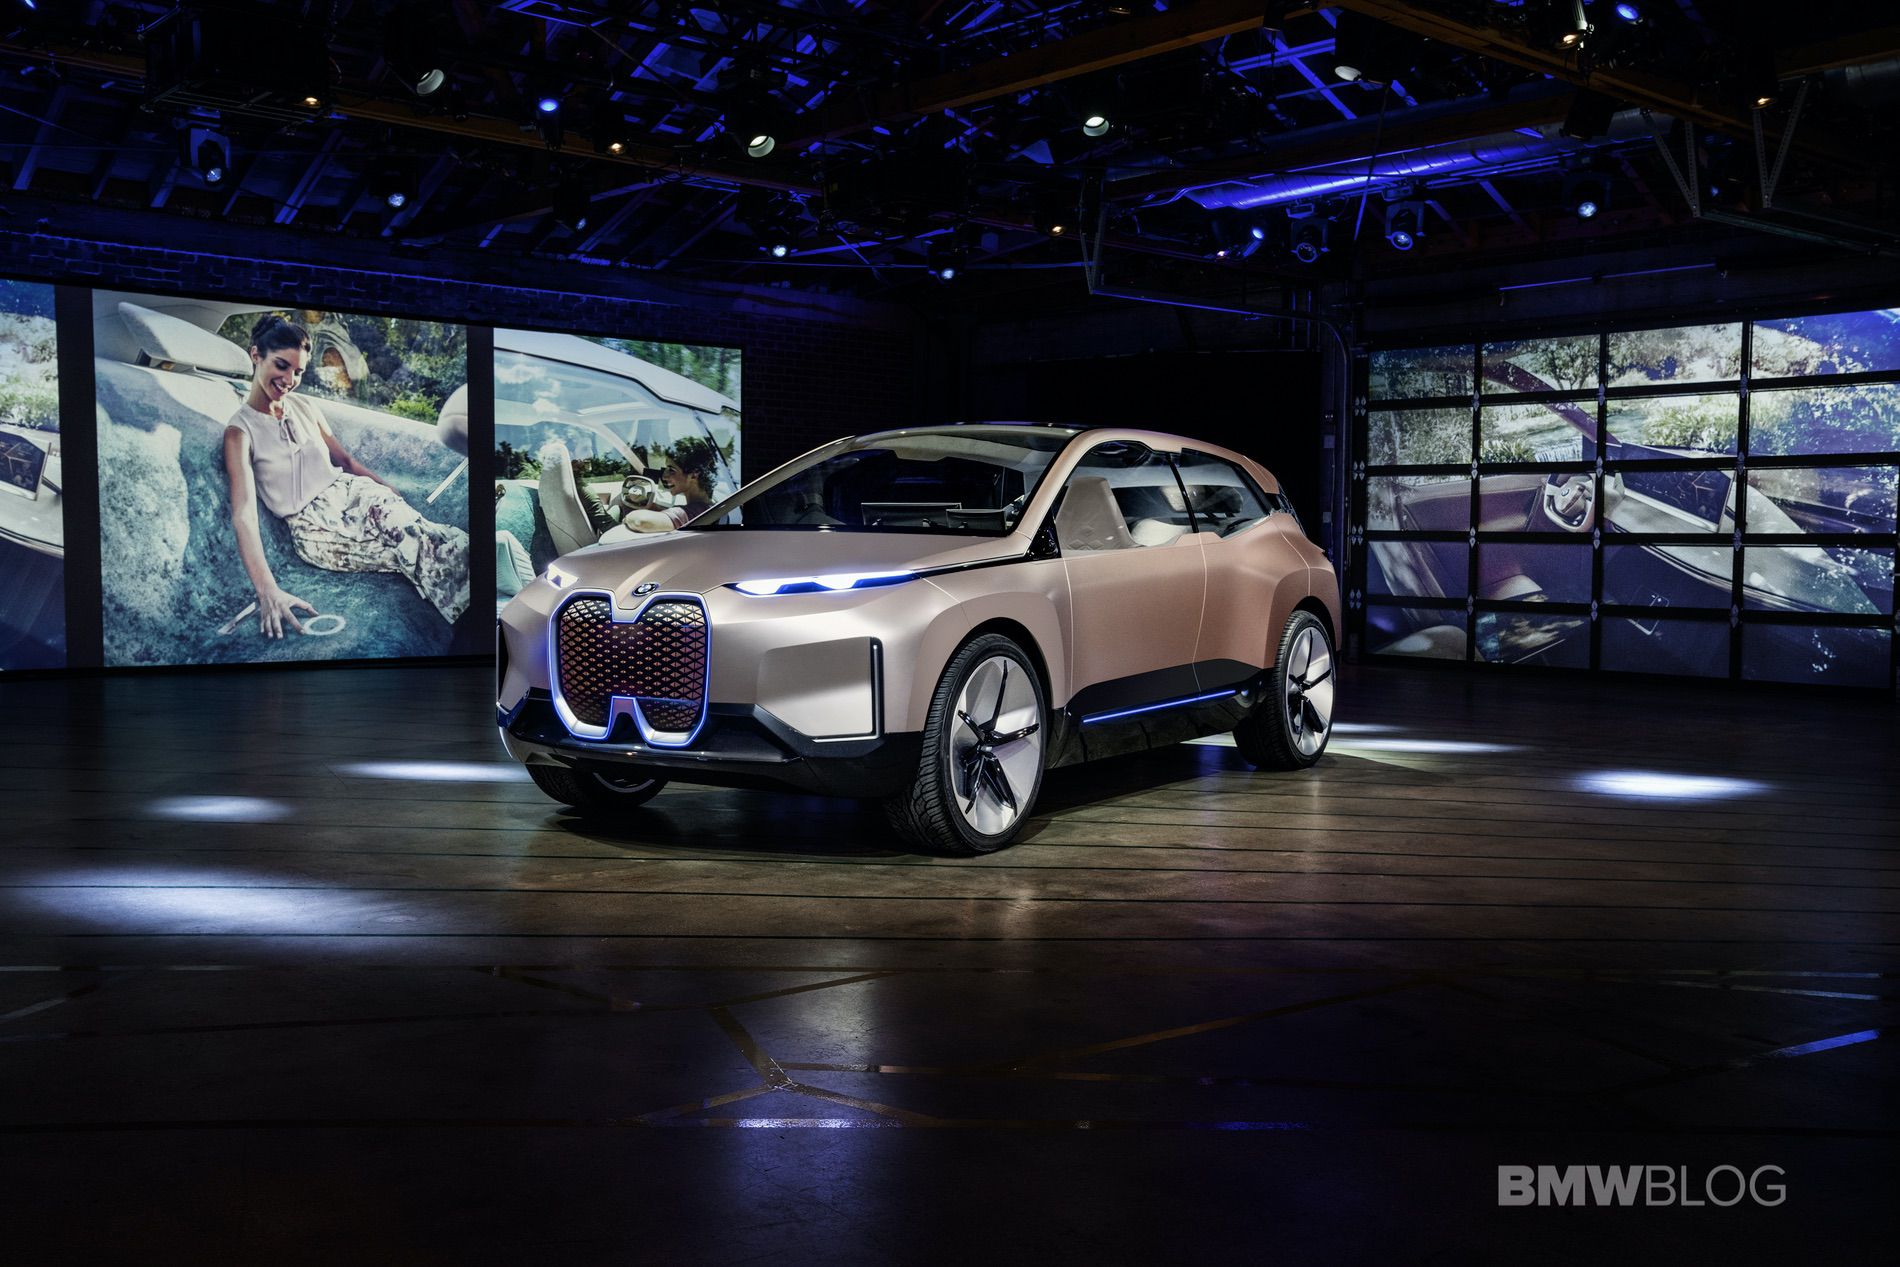 BMW i Working to Become Tech Leader -- Top Gear talks with BMW i VP